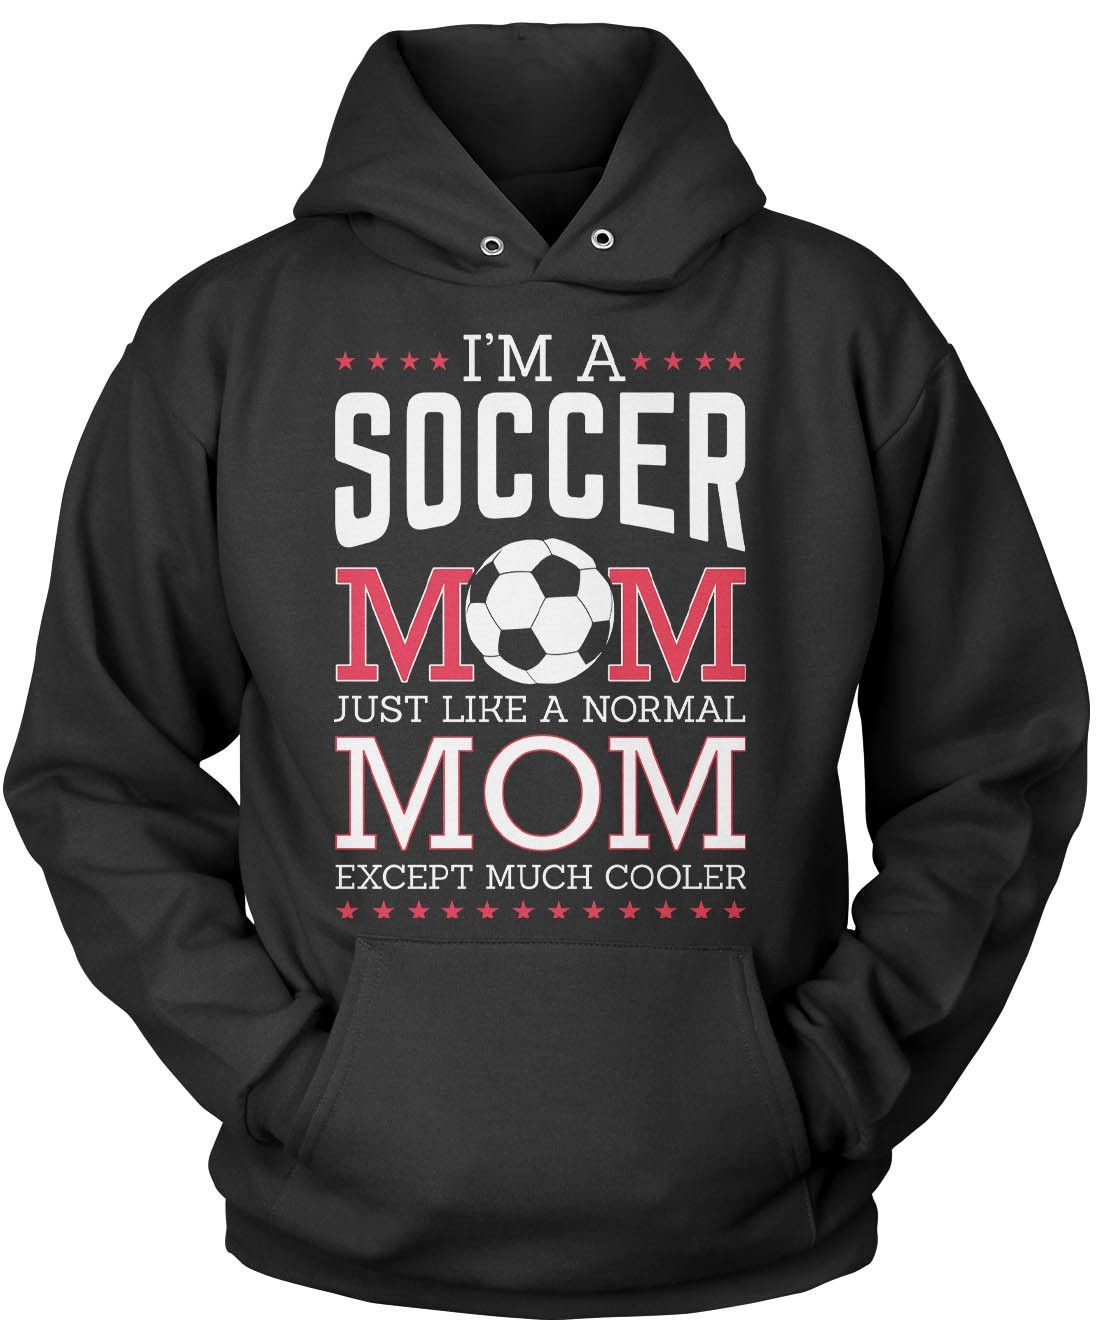 I'm a Soccer Mom Except Much Cooler